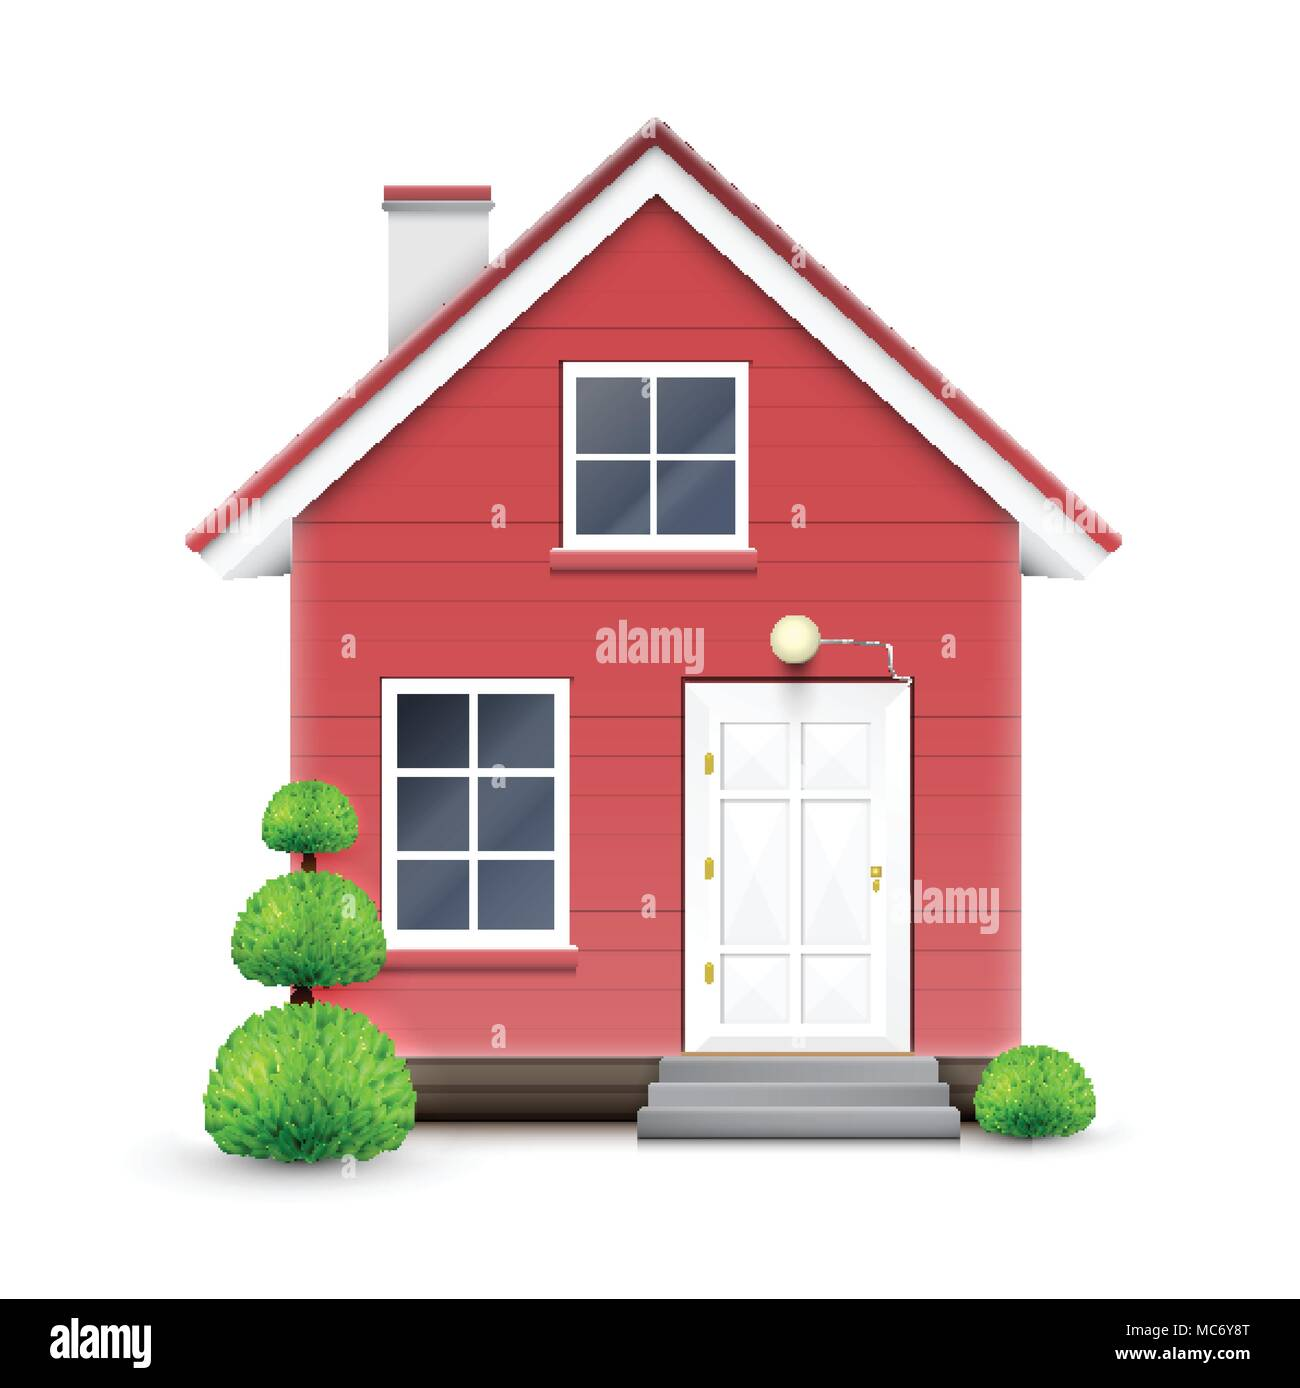 Realistic house, vector Stock Vector Art & Illustration ... on house framing designs, house carports designs, shake siding designs, house stucco designs, patios designs, metal siding designs, stone siding designs, cedar siding designs, rustic home exterior designs, masonite siding designs, house steps designs, house chimney designs, modern siding designs, cottage siding designs, mobile home siding designs, home repair designs, house garage designs, house beams designs, hardie siding designs, house plastering designs,